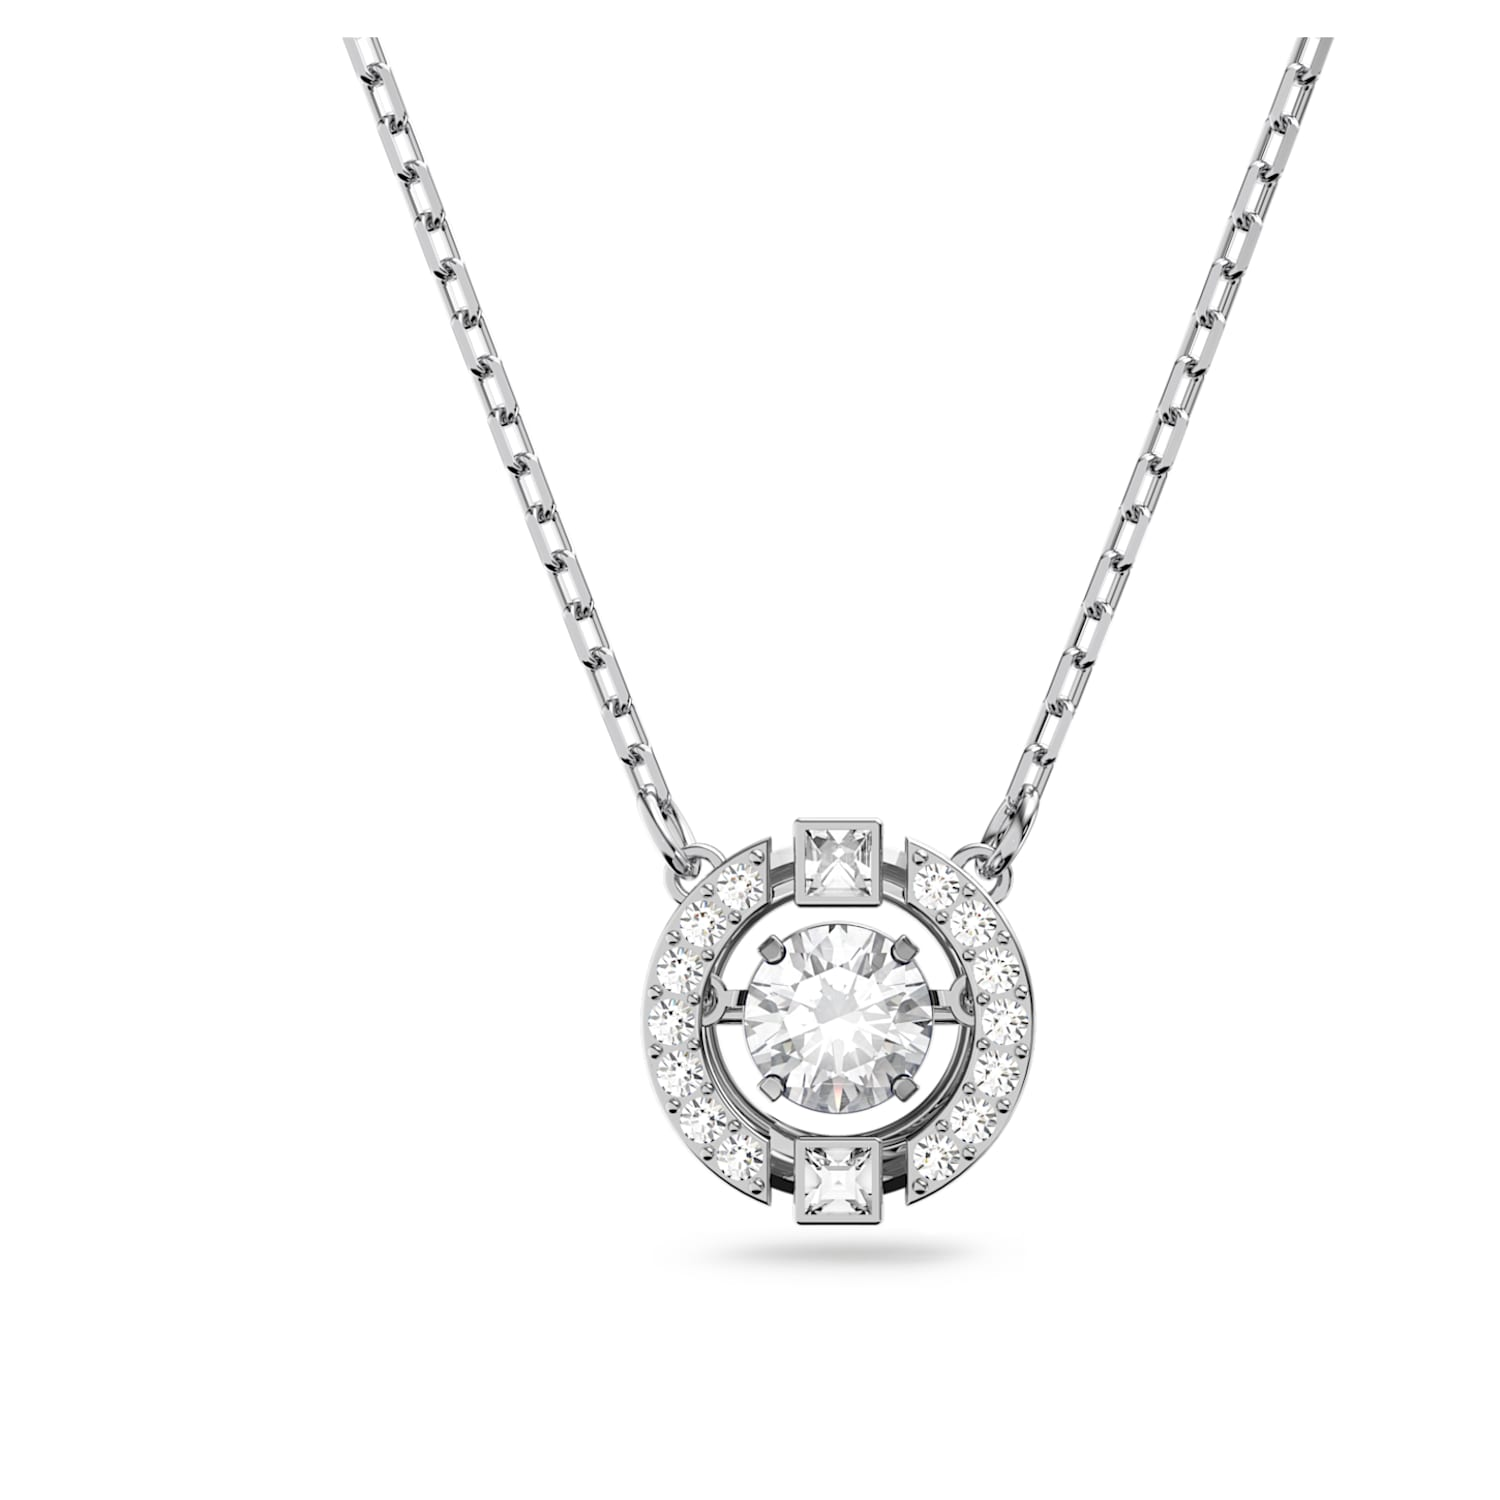 Details about  /Sparkling Moissanite Deer Necklace Women Holiday Jewelry 14K White Gold Plated